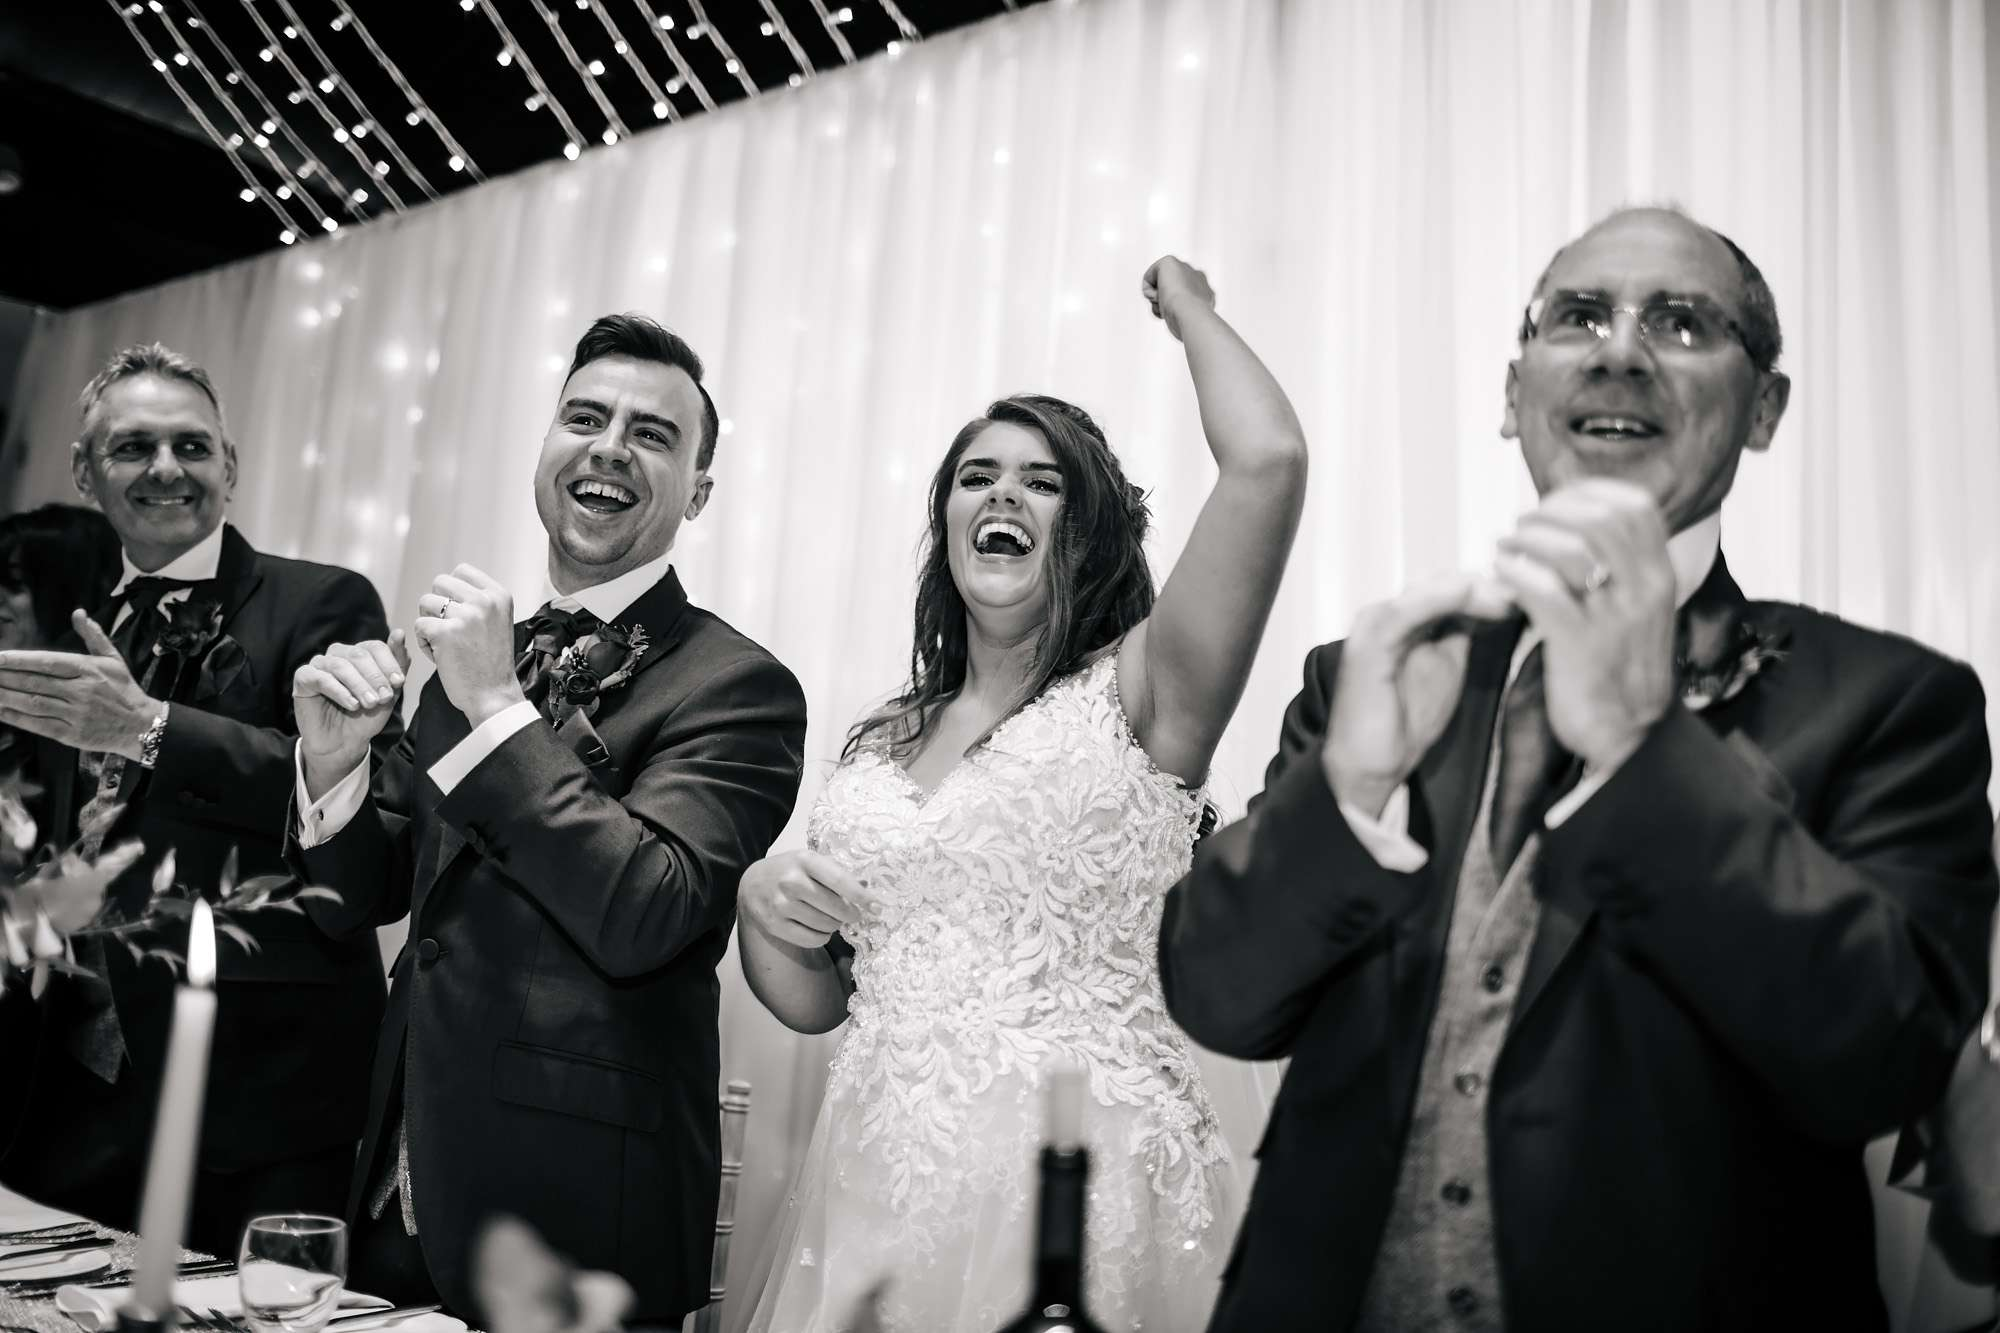 Bride and groom dancing at their wedding